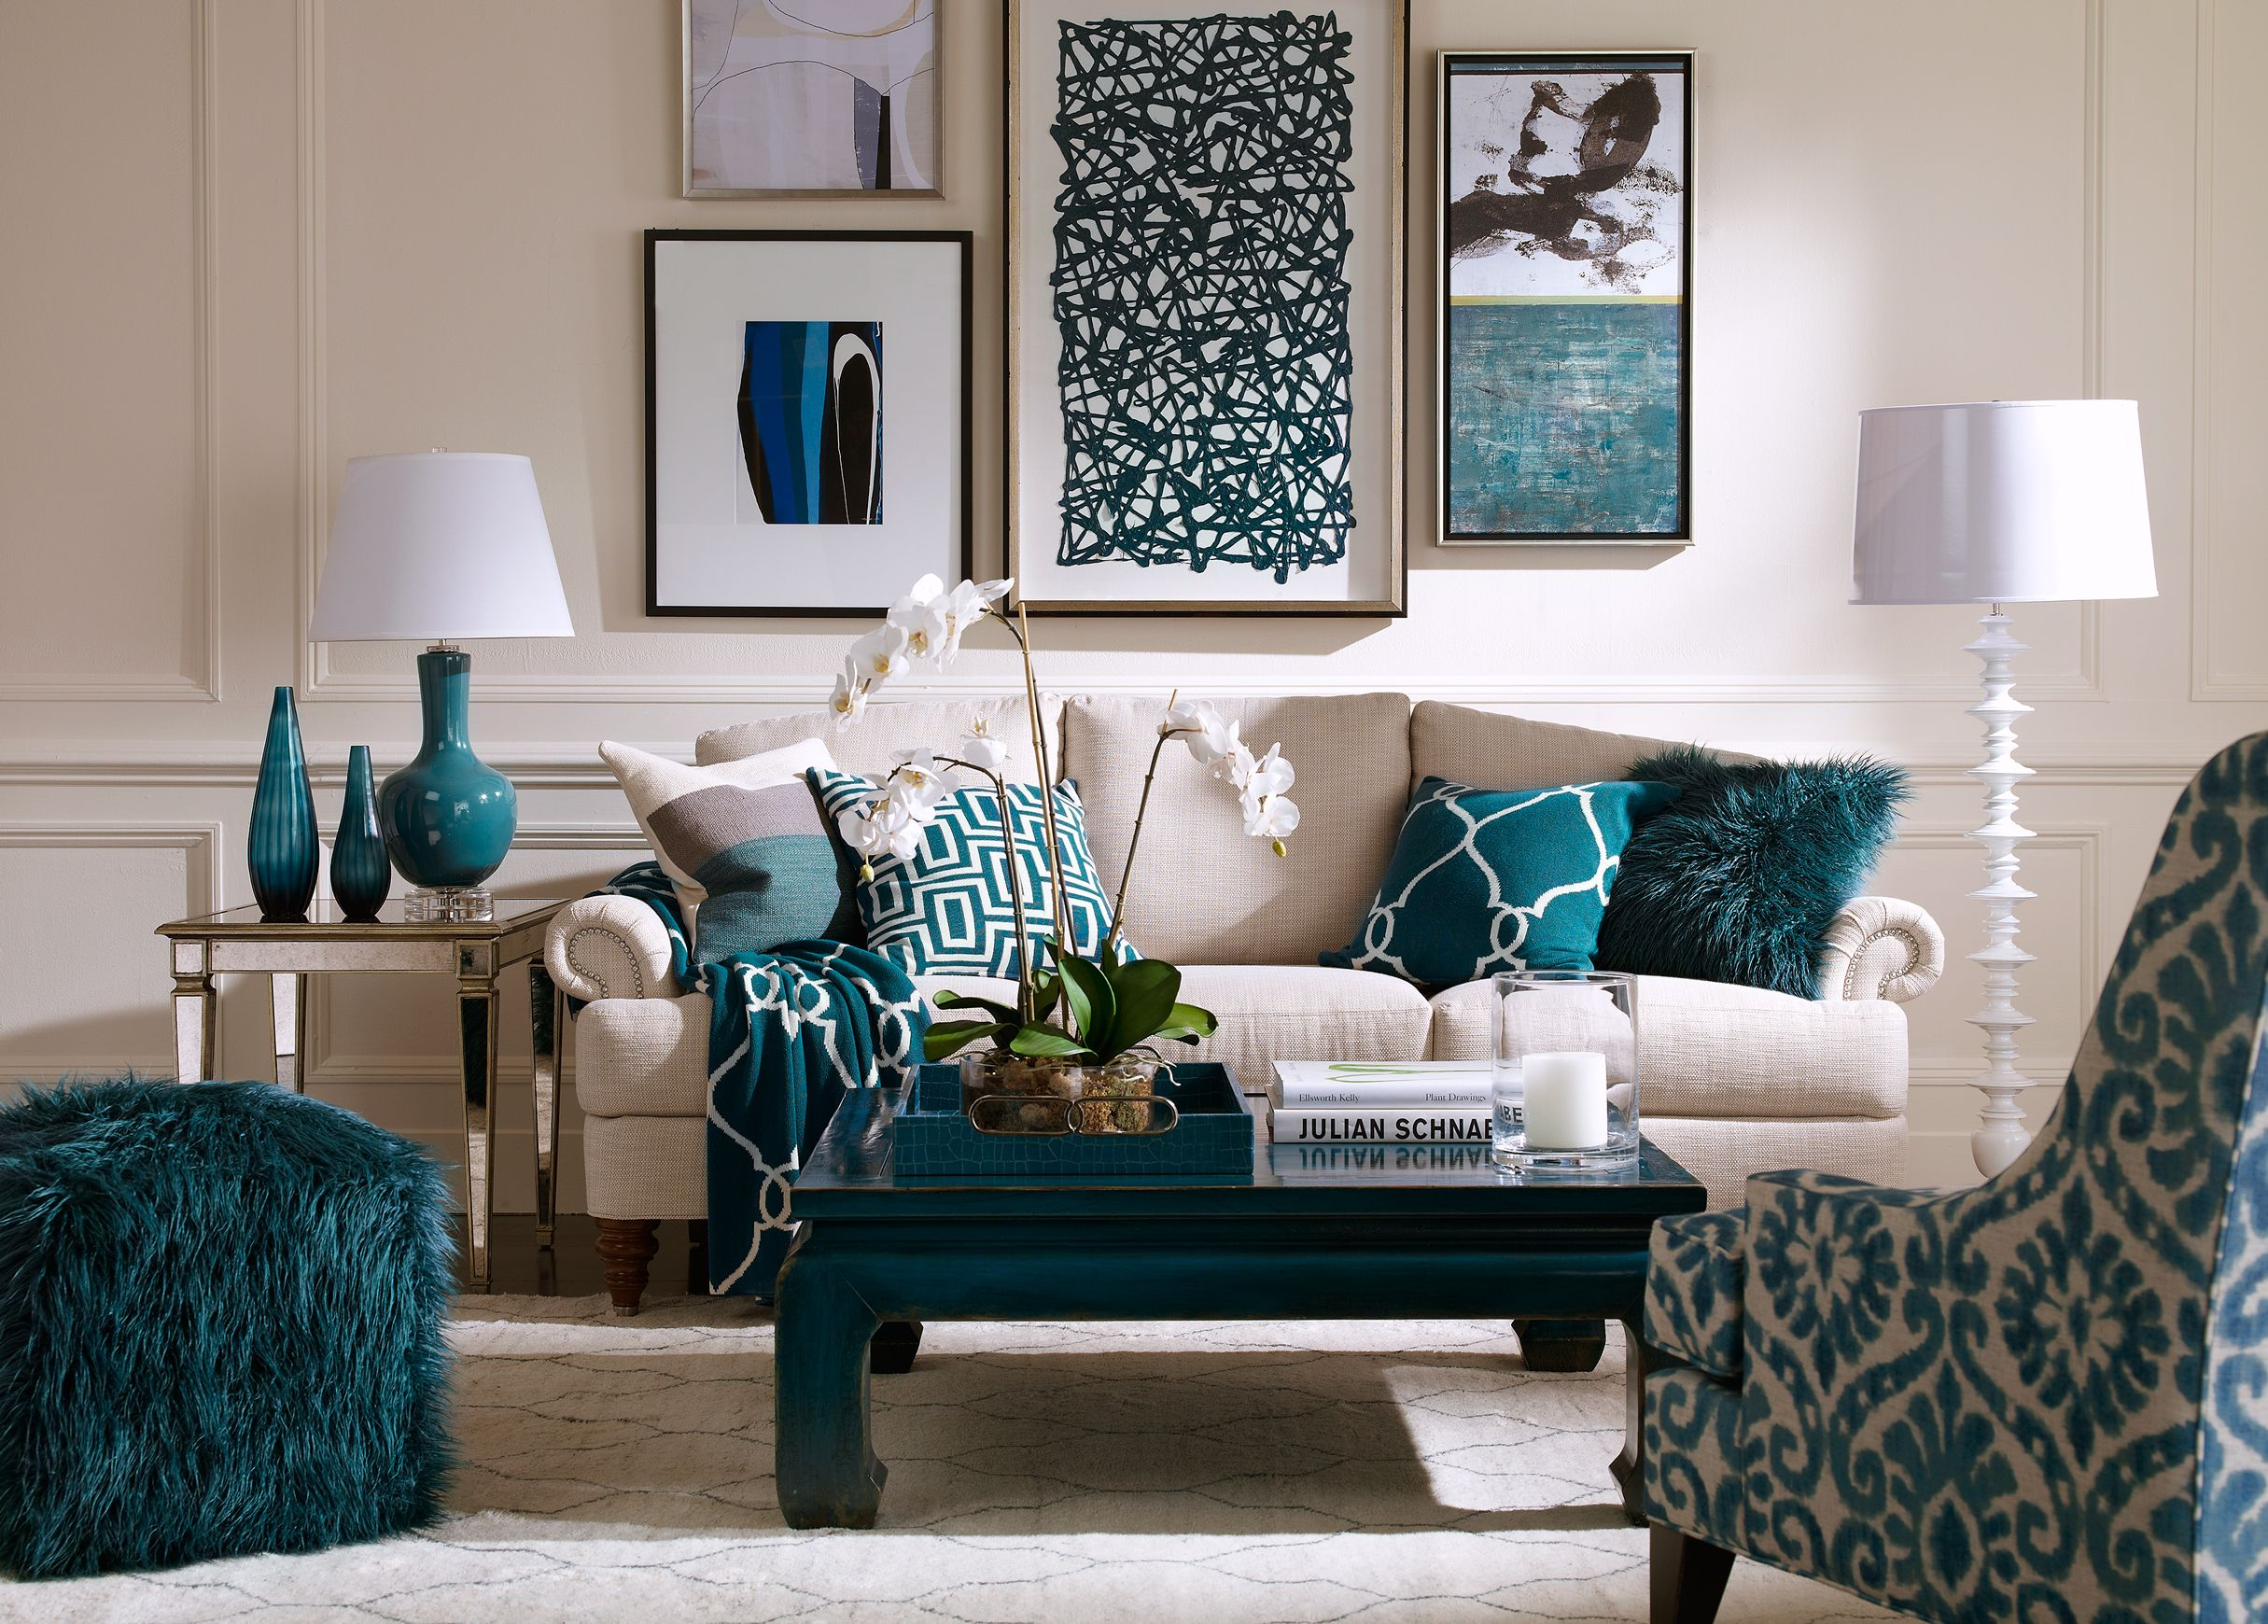 Living Room Ideas Decorating Inspiration best 20+ living room turquoise ideas on pinterest | orange and